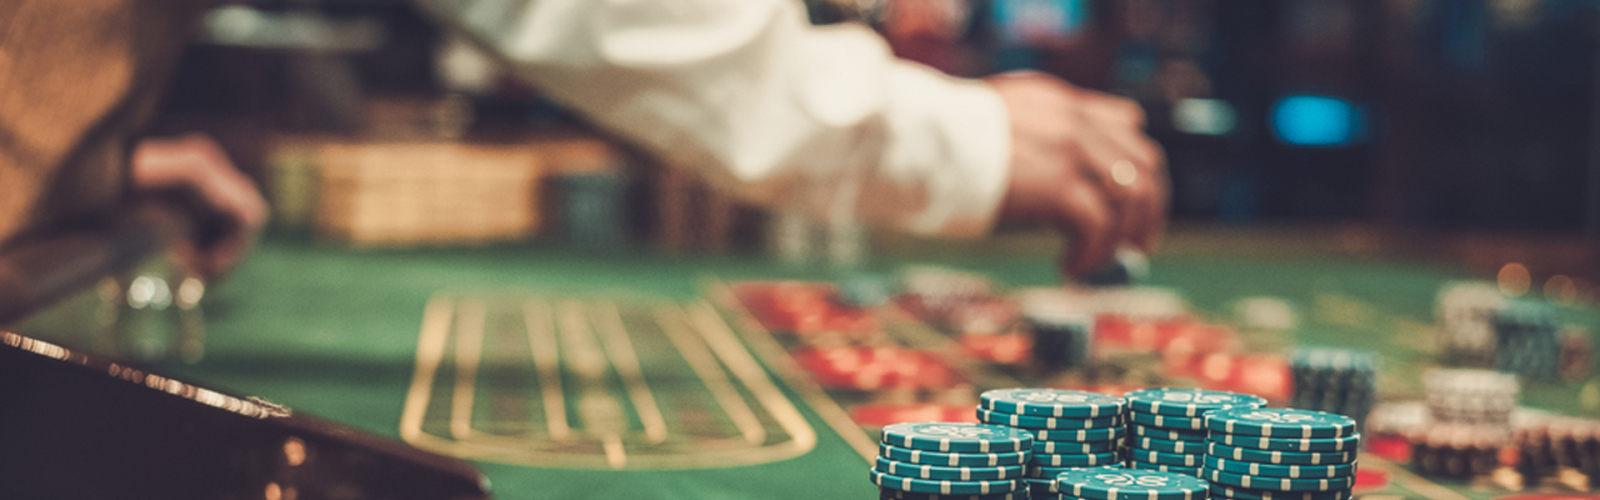 dealer with long sleeve distribute casino chips on roulette table